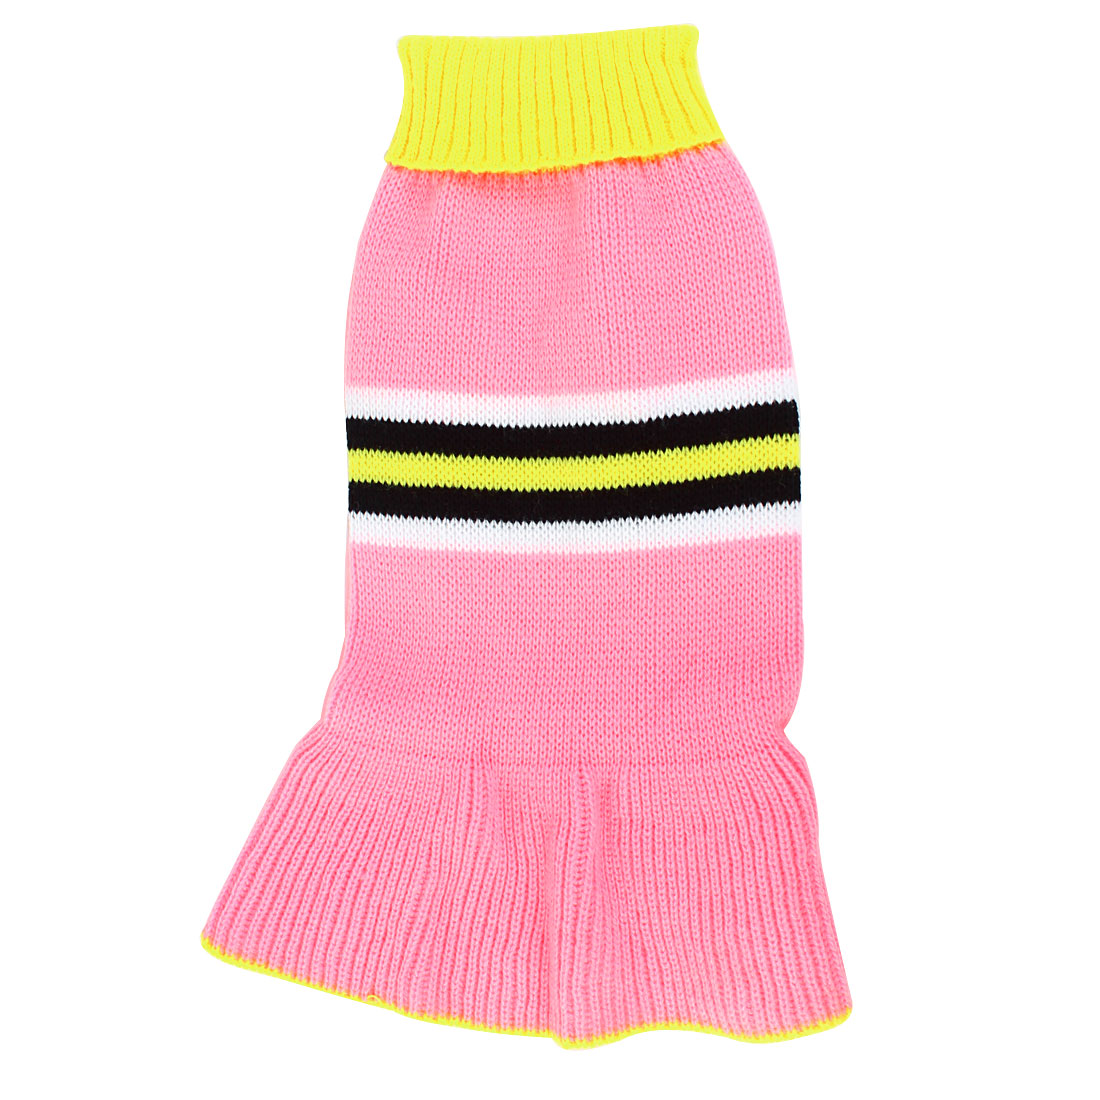 Pet Dog Poodle Yellow Pink Ribbed Cuff Knitwear Turtleneck Dress Apparel Sweater Size S